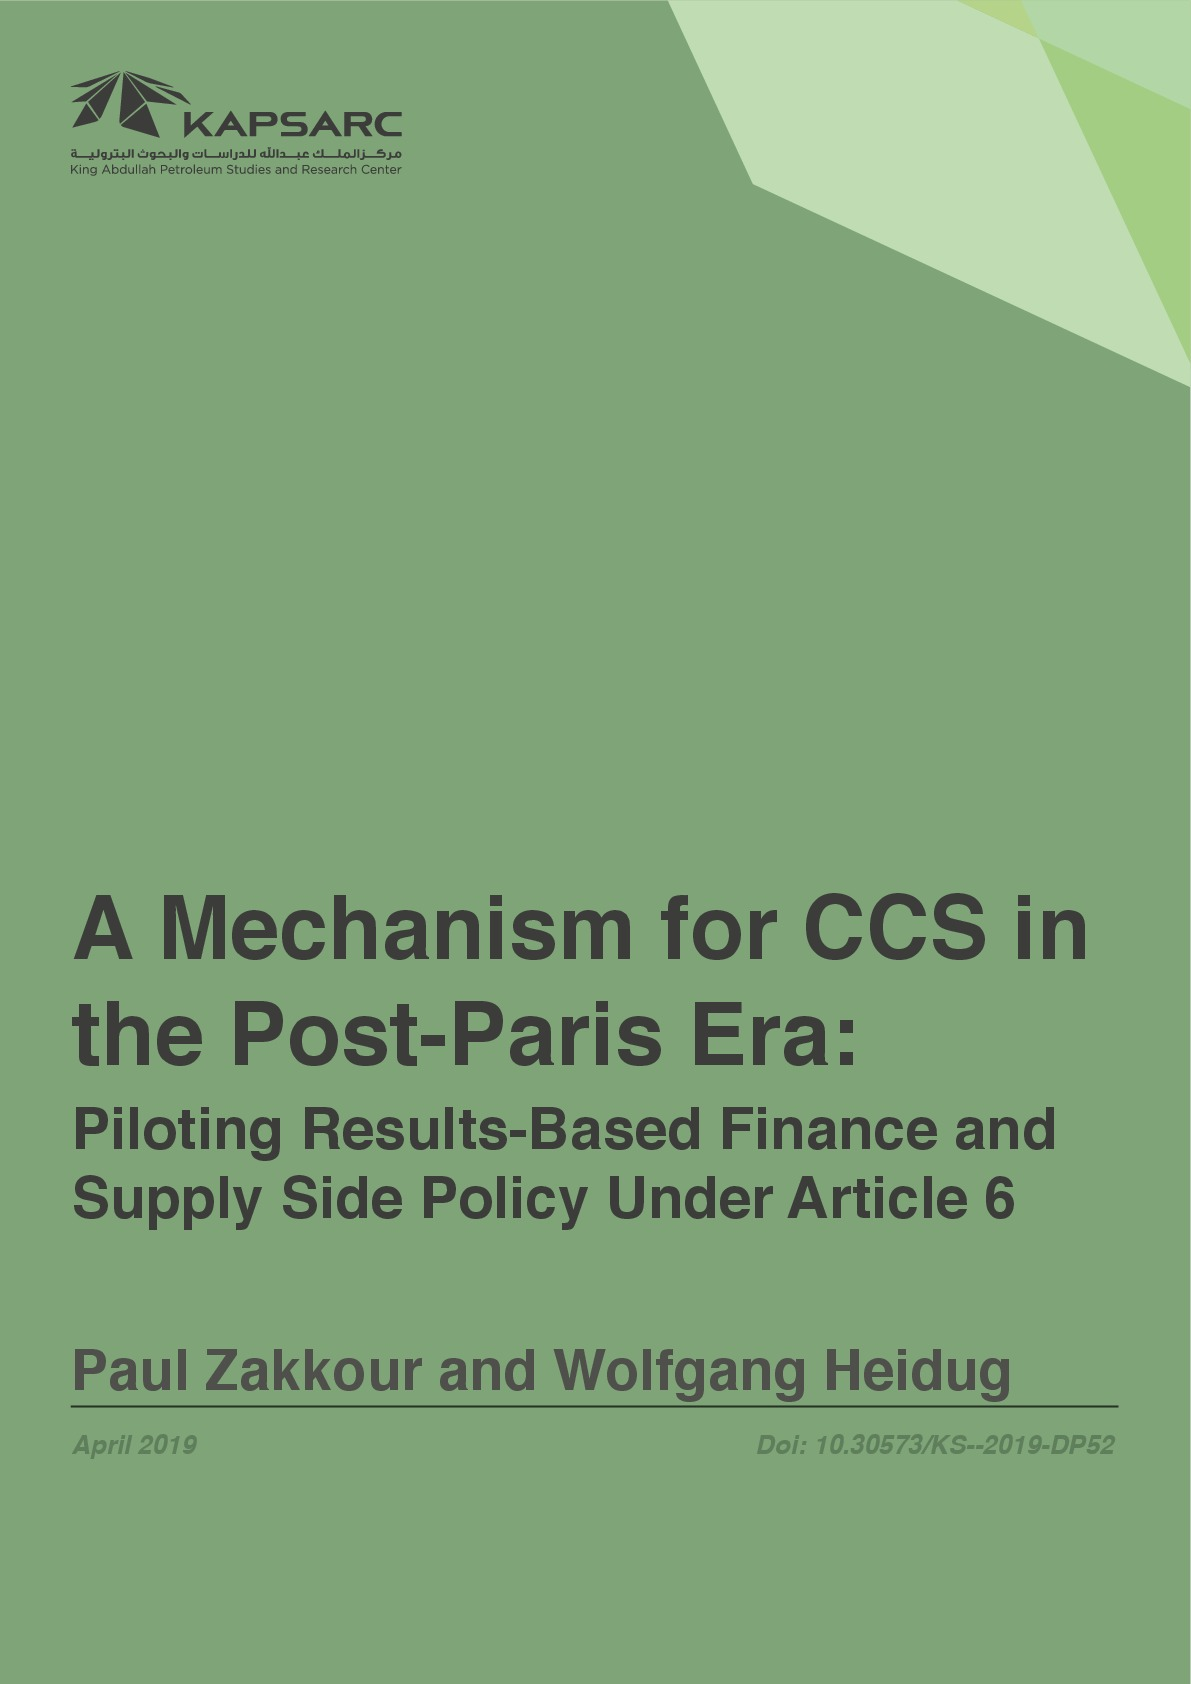 A Mechanism for CCS in the Post-Paris Era